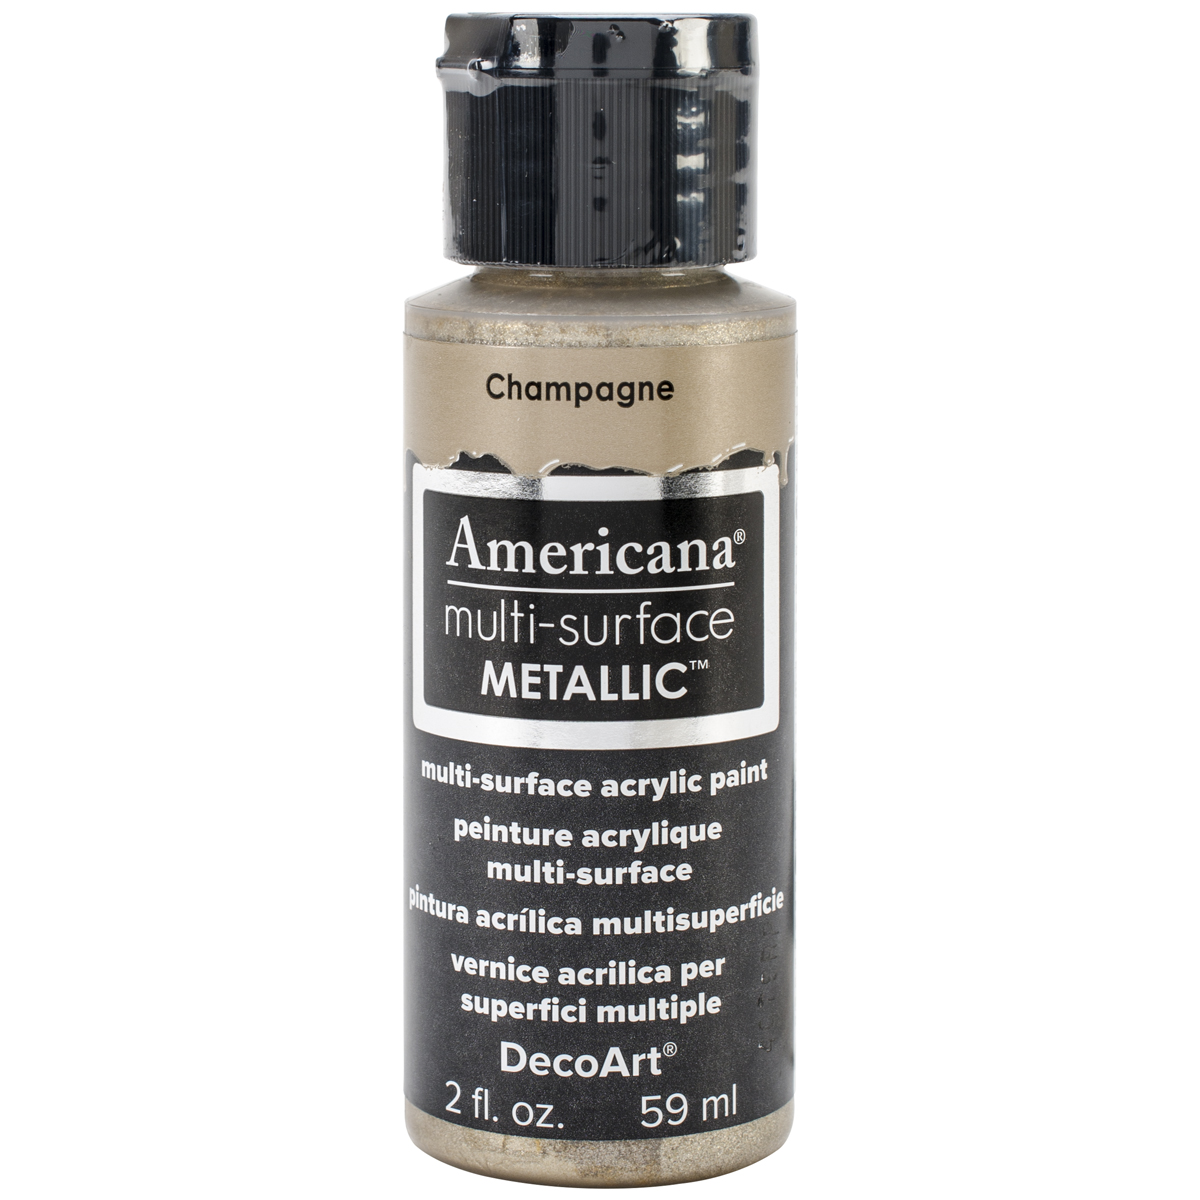 Americana Multi-Surface Metallic Acrylic Paint 2oz-Champagne